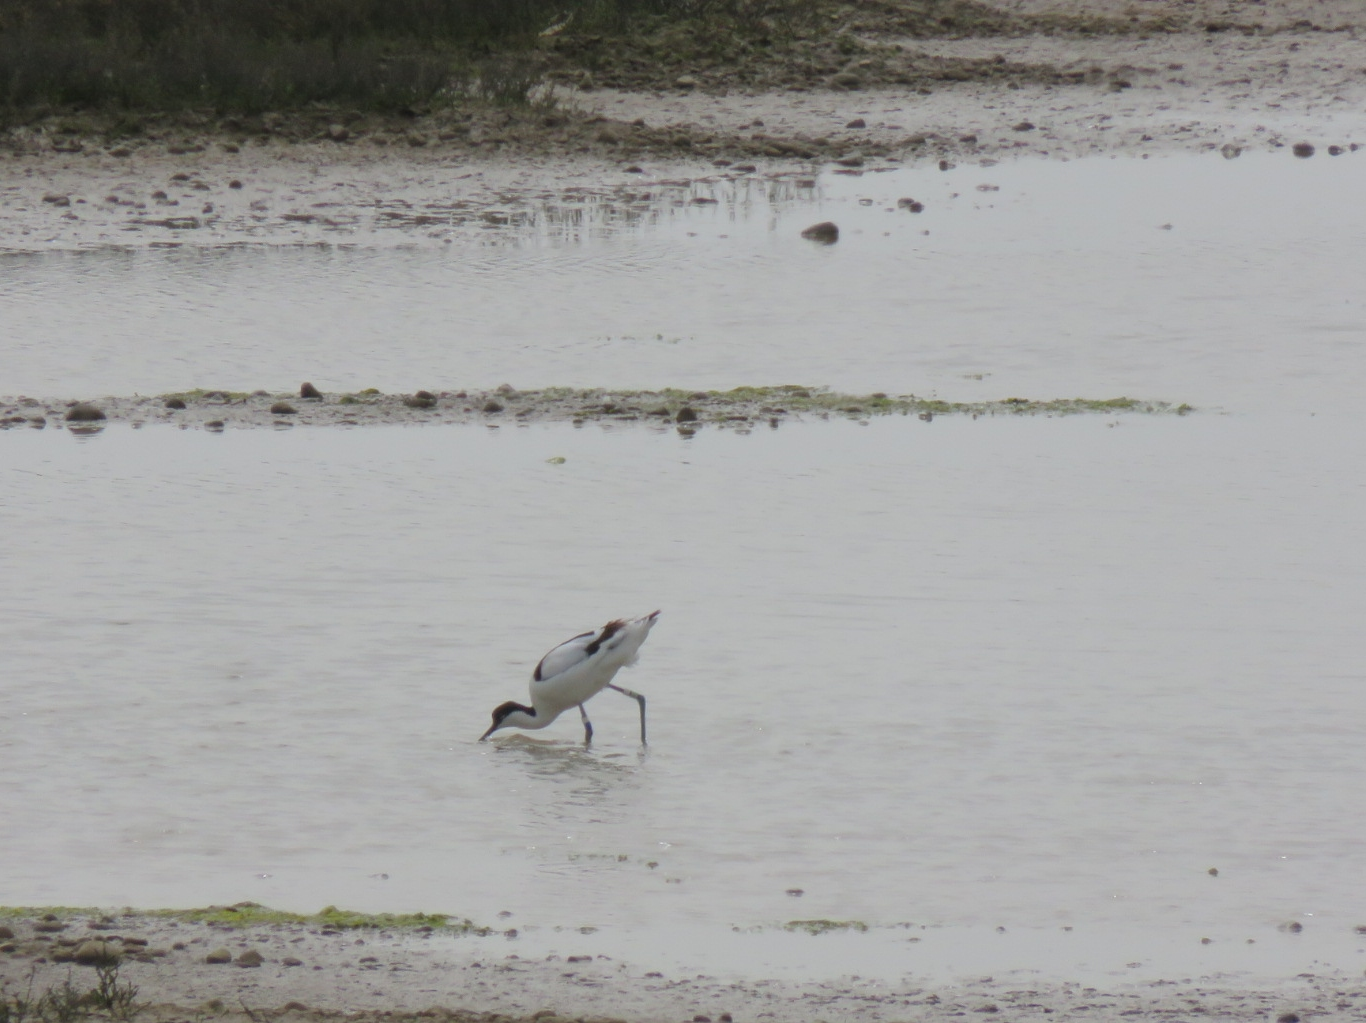 Battleaxe sighs over election horrors, Rye Harbour with avocets and creepy caterpillars